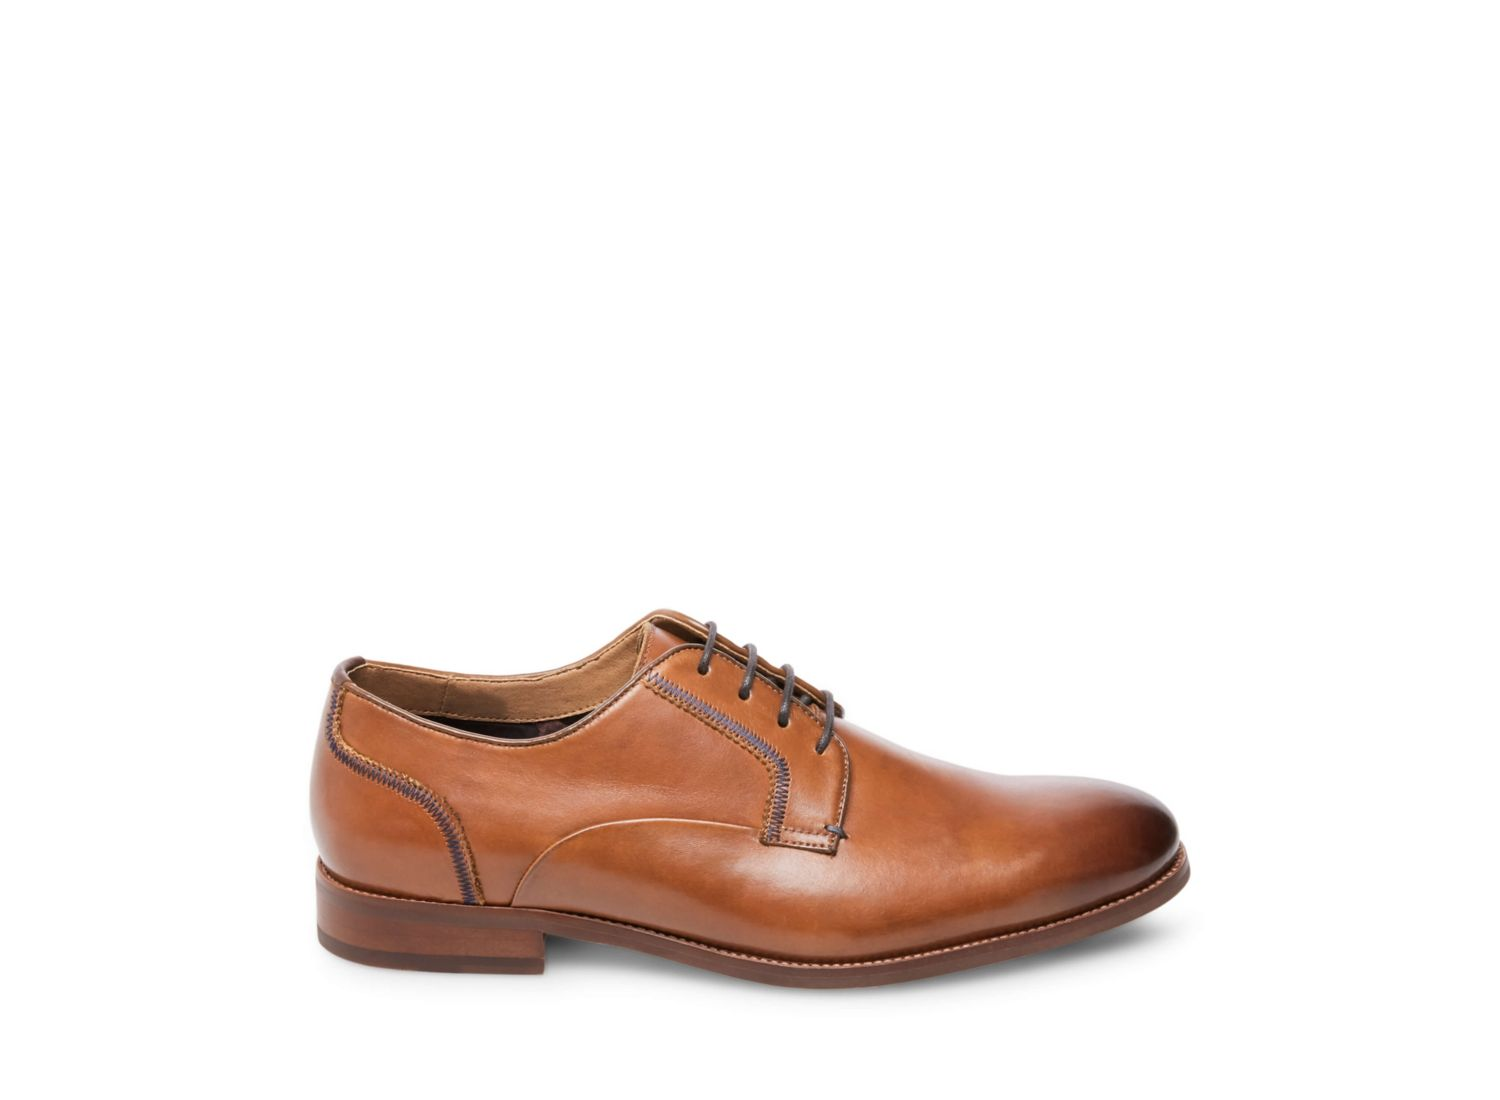 HART TAN LEATHER - Steve Madden